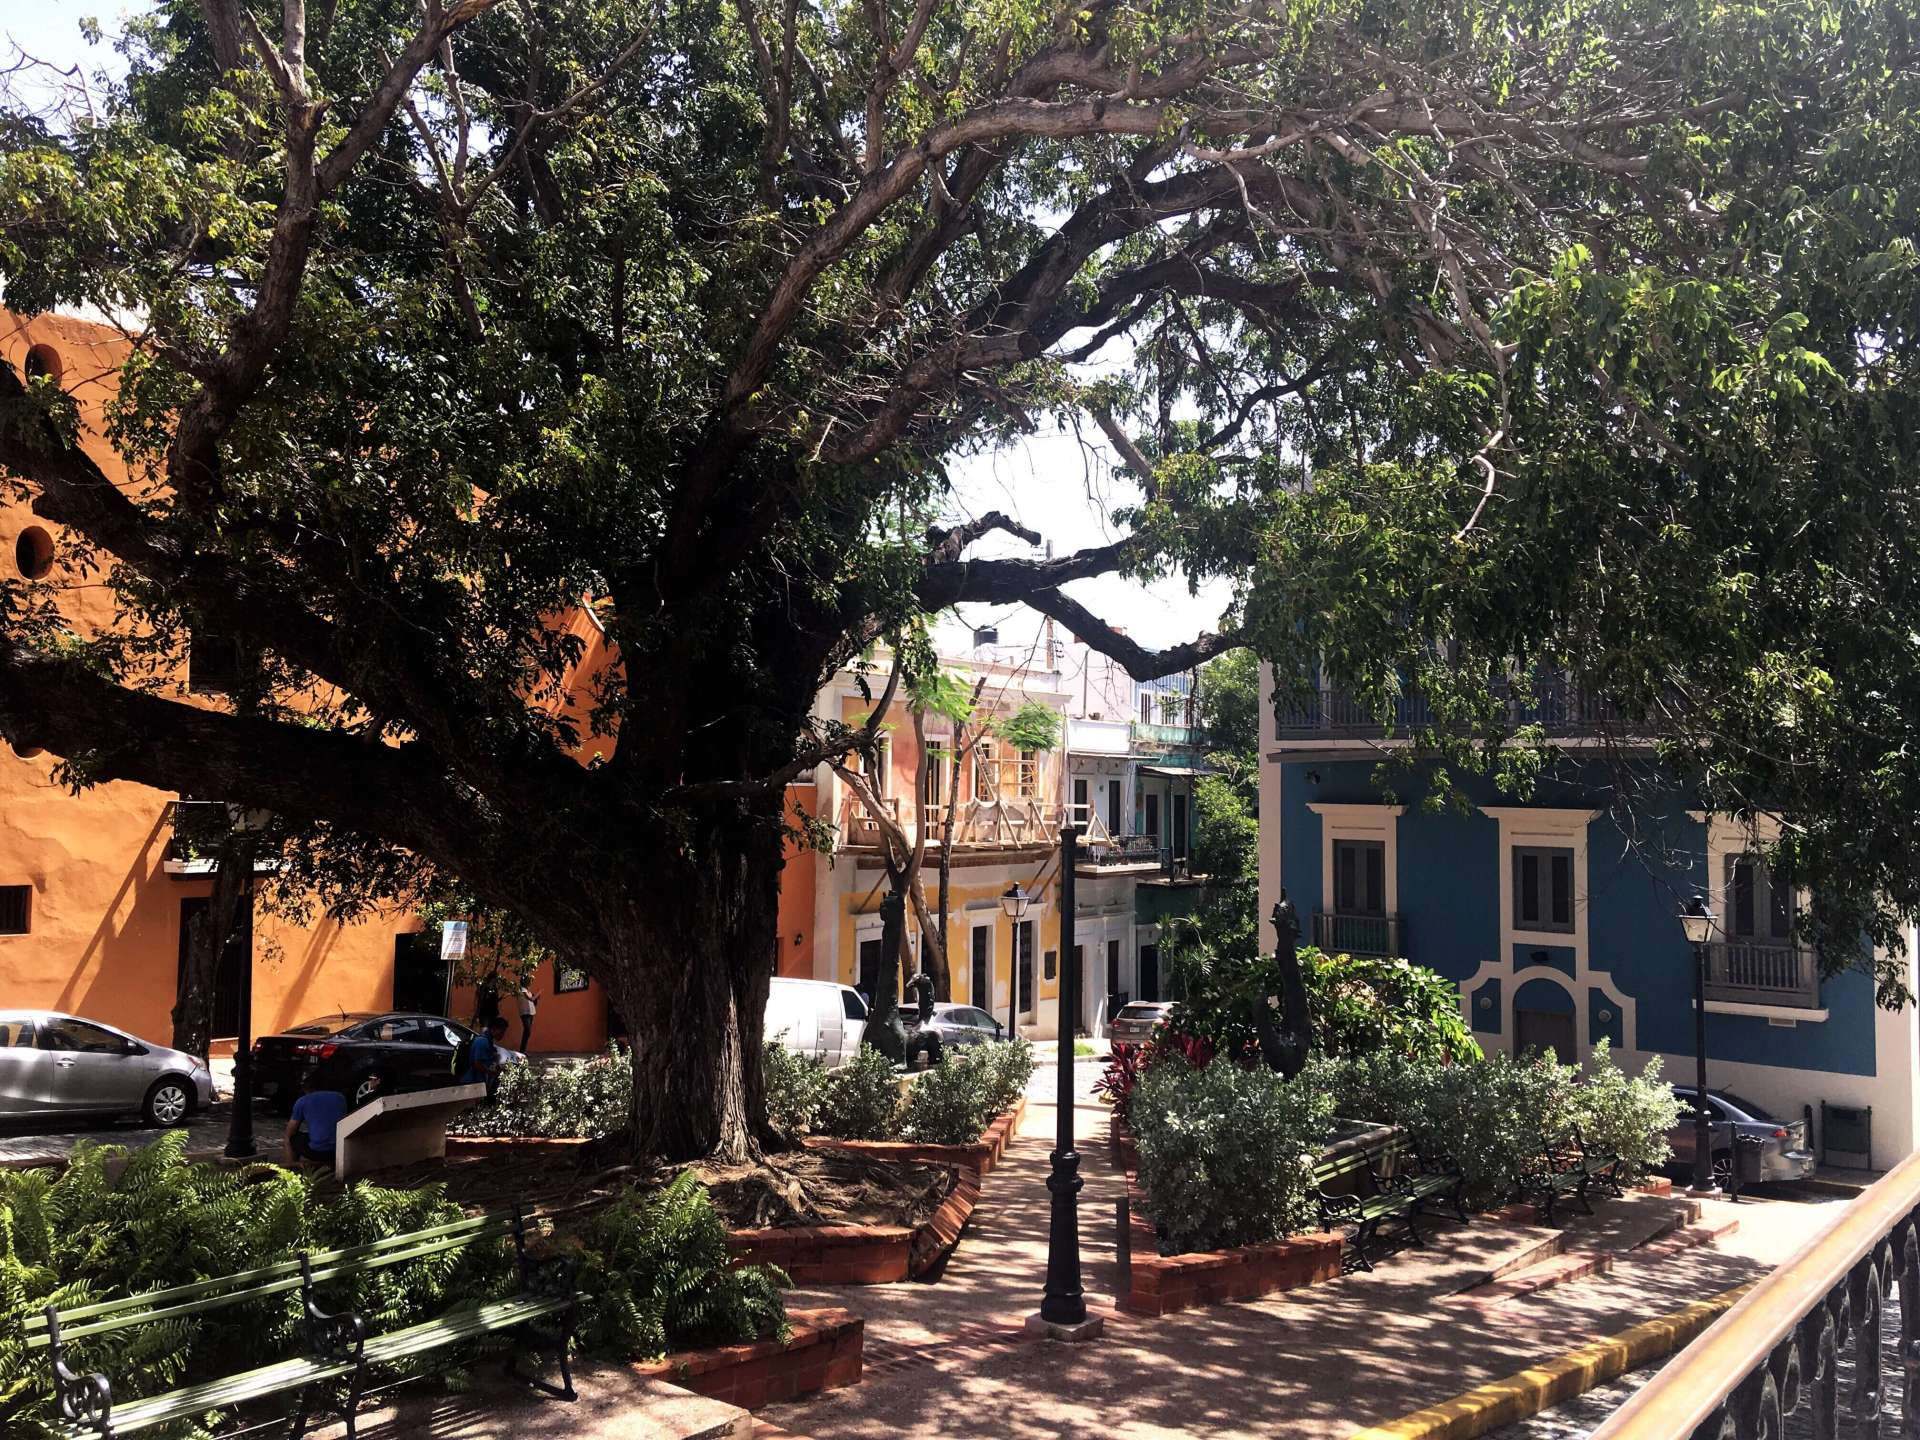 Old San Juan colorful buildings trees and el convento